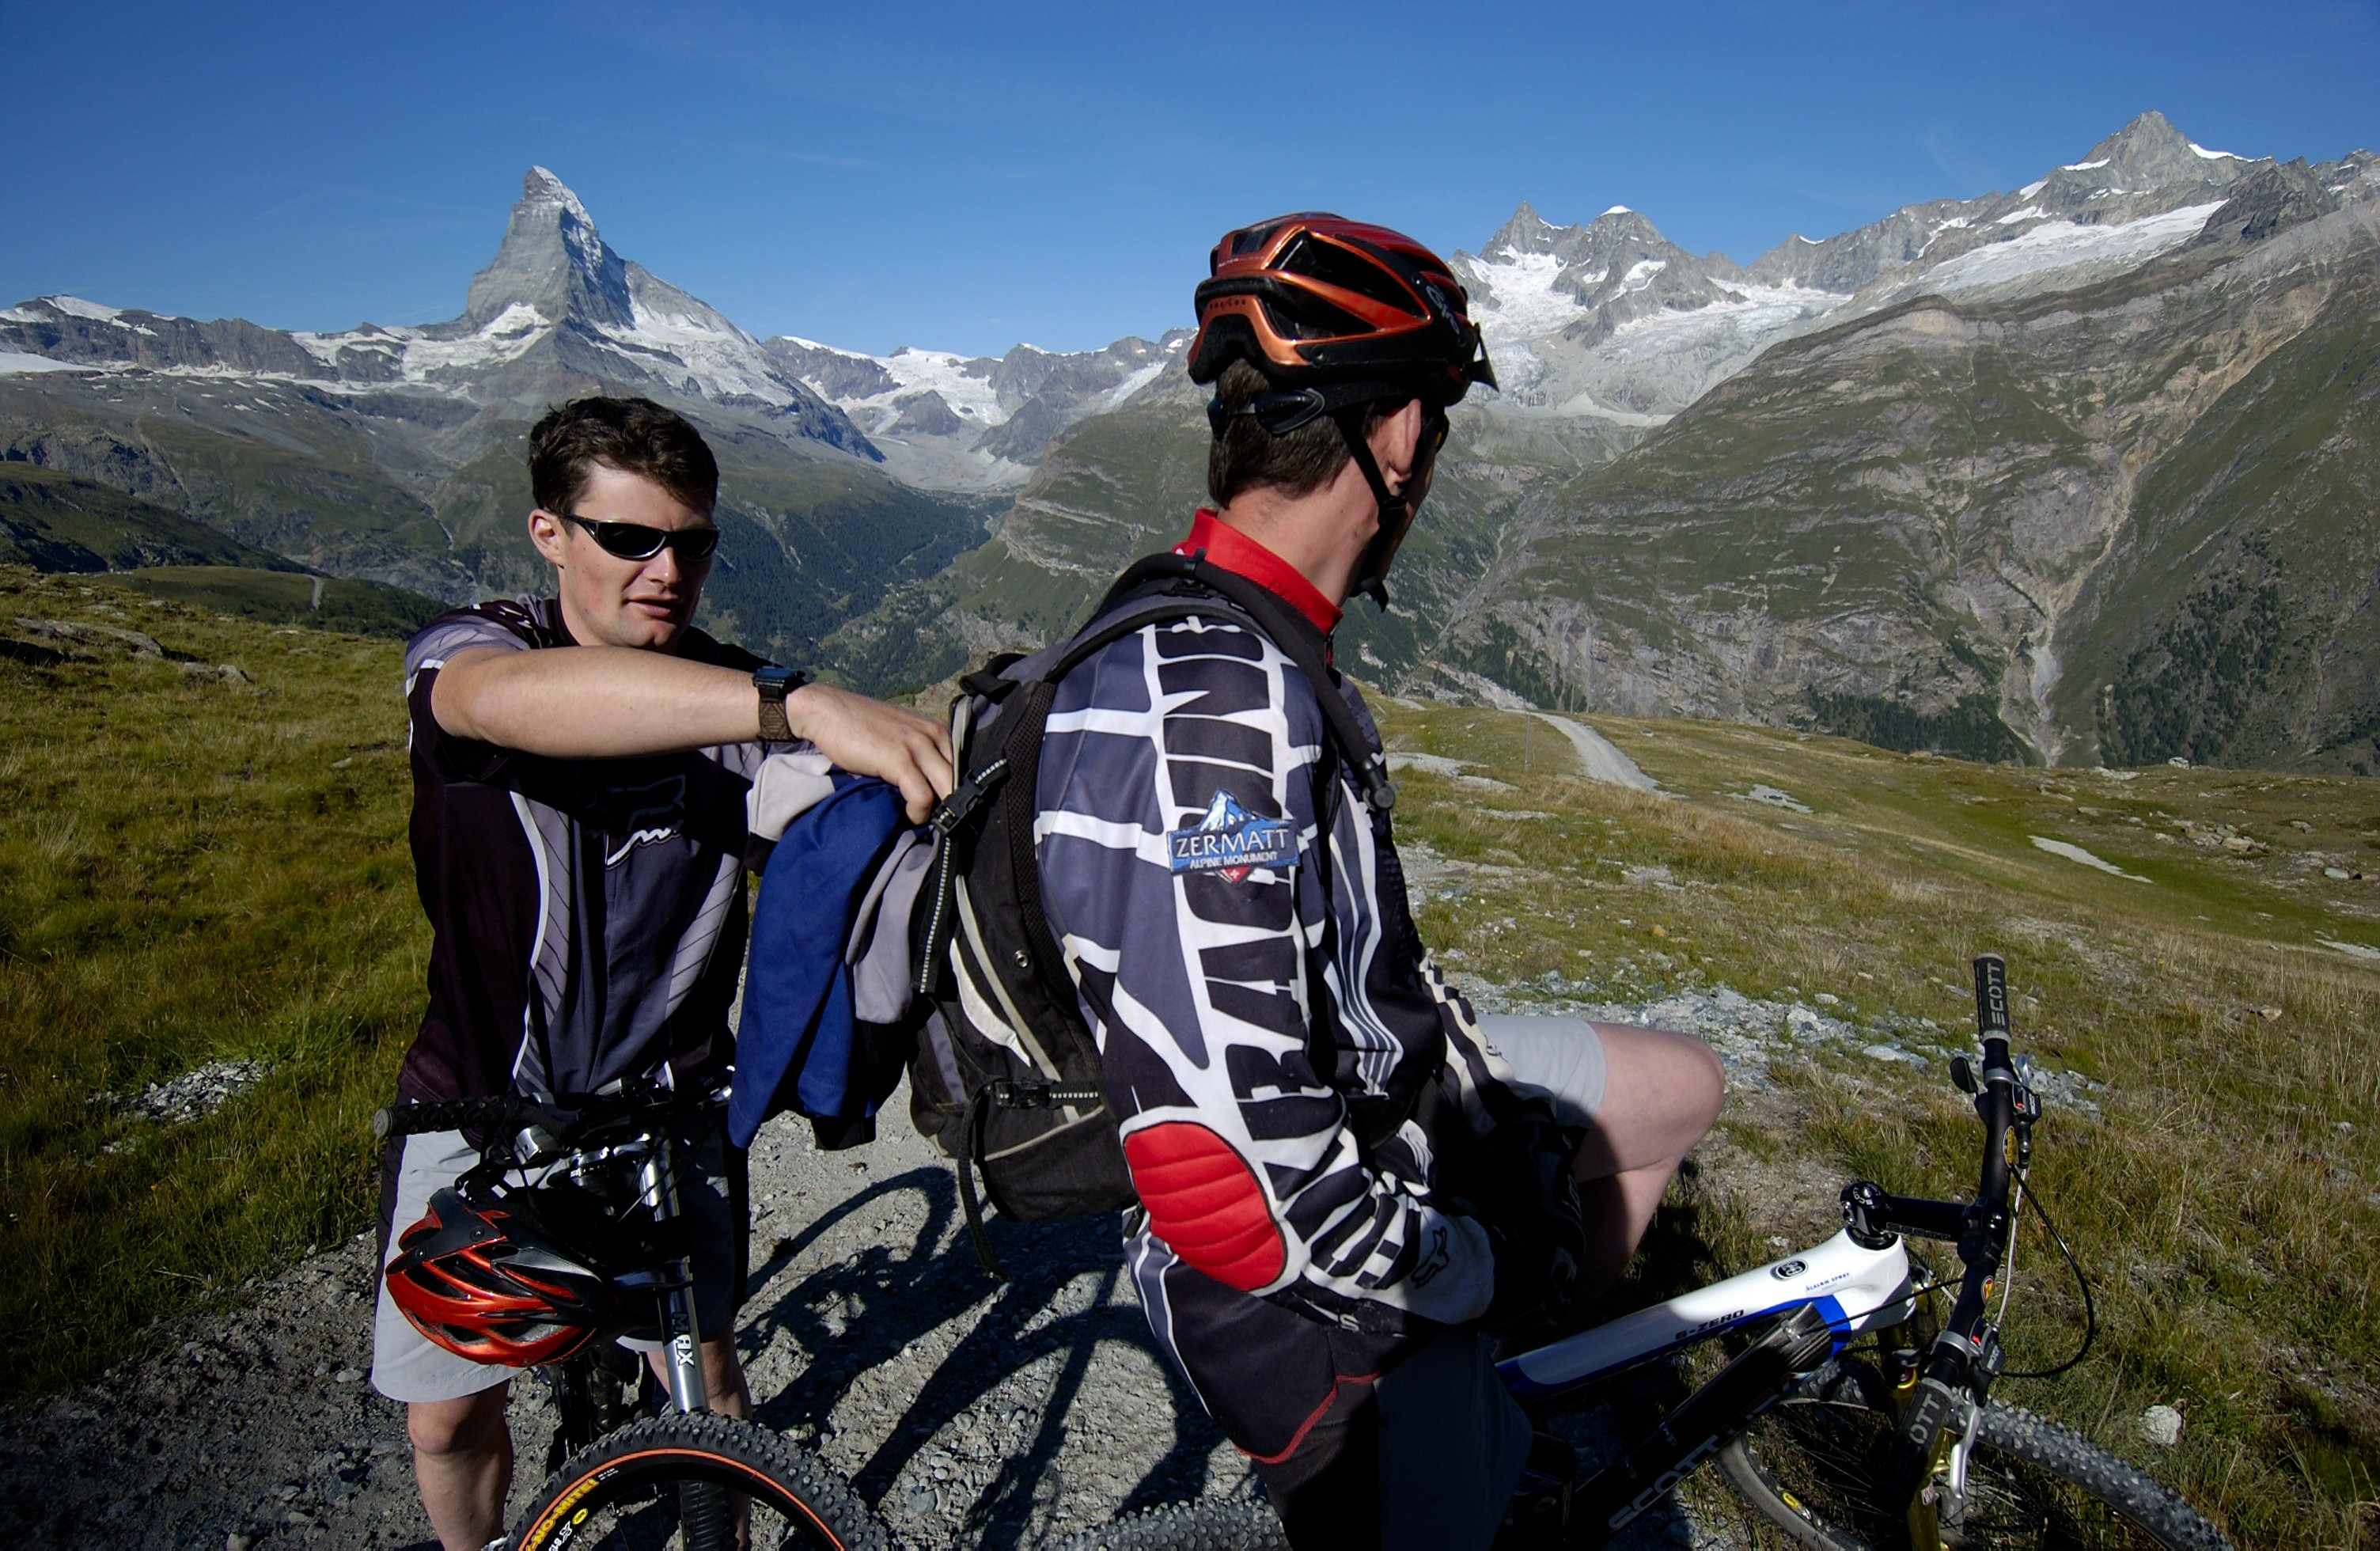 What a run! The downhill from Rothorn to Zermatt entails a vertical drop of 1,678 m. Top tip: stay relaxed and enjoy the ride!